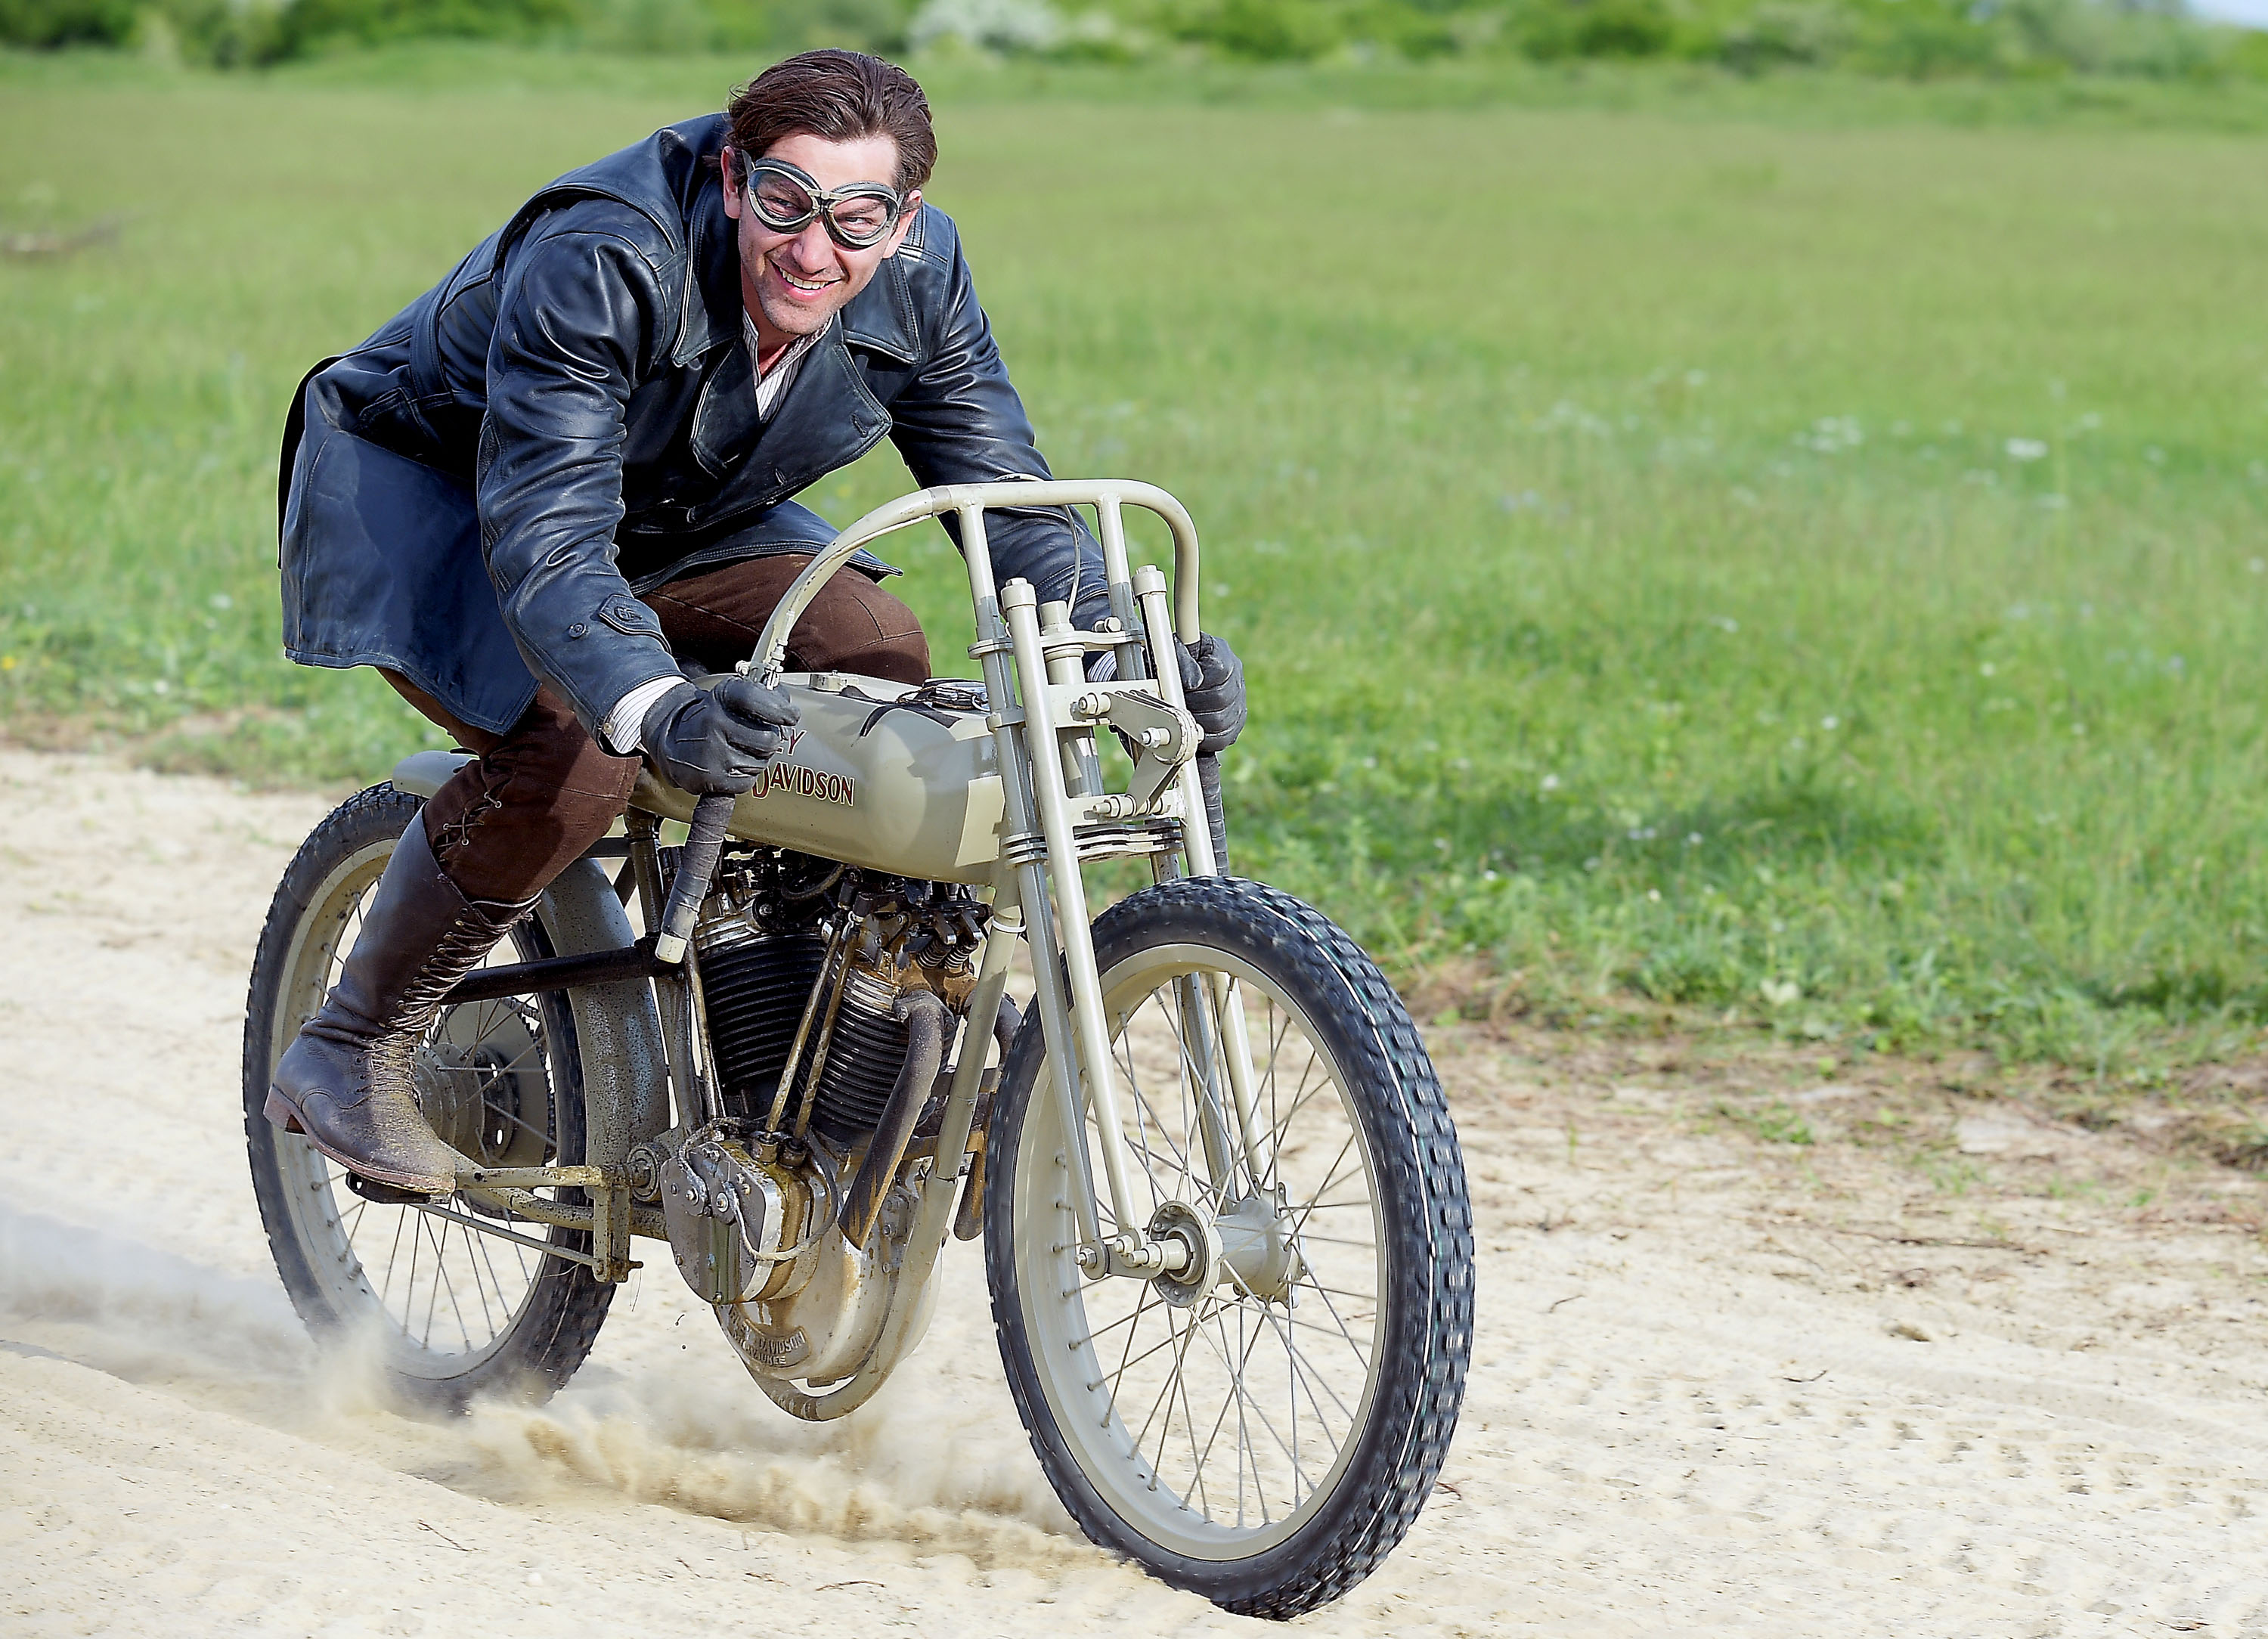 'Harley and the Davidsons'